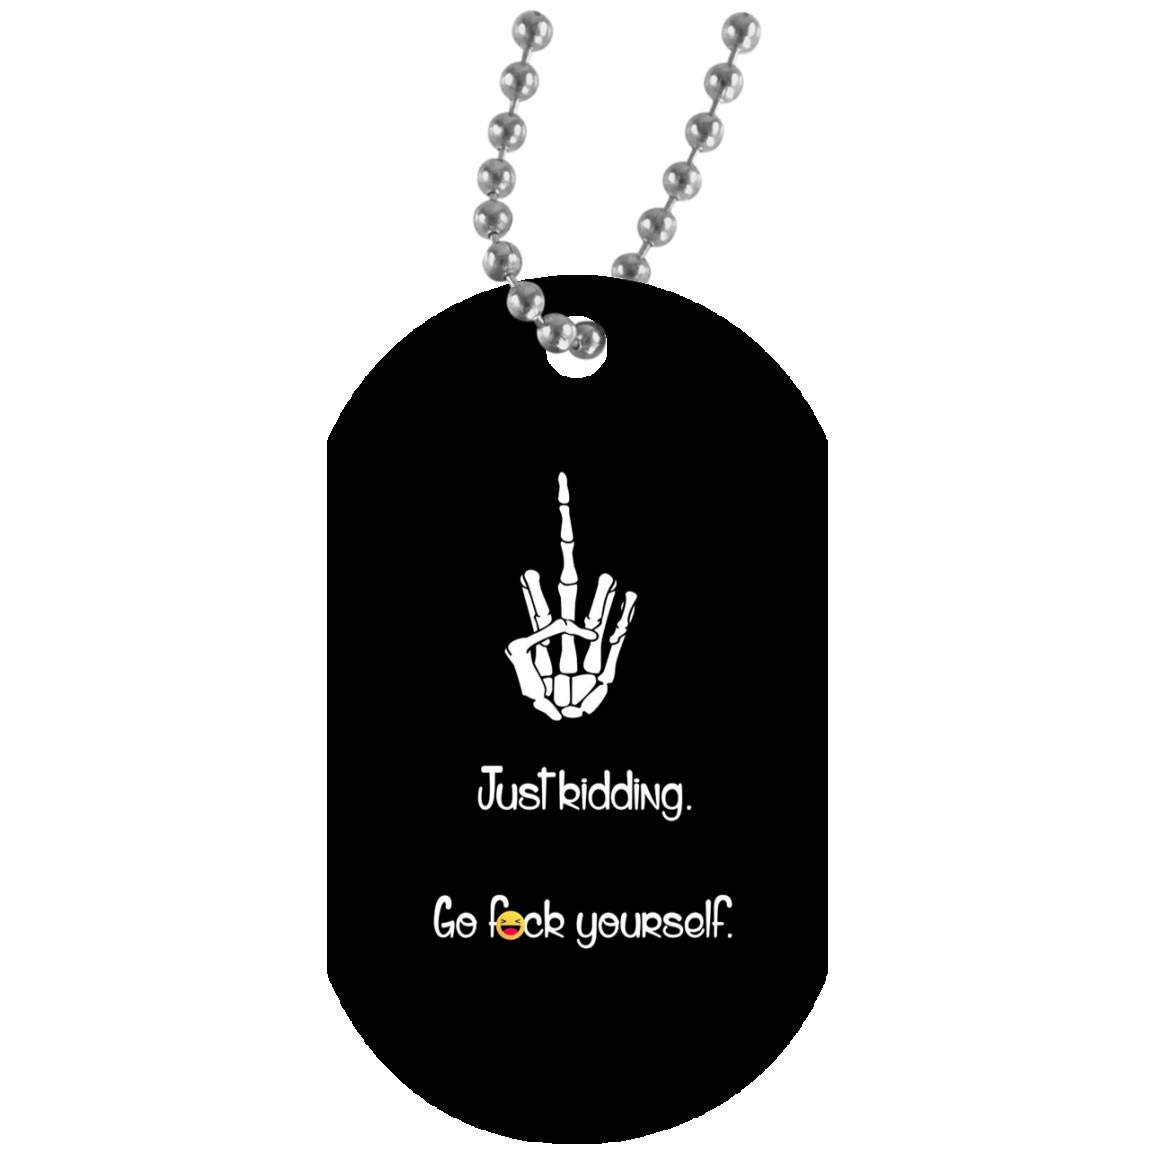 Just Kidding Go Fock Yourself Dog Tag Military Necklace Army for Men and Women Sonzoo Shop Funny Dog Tag Military Necklace Army